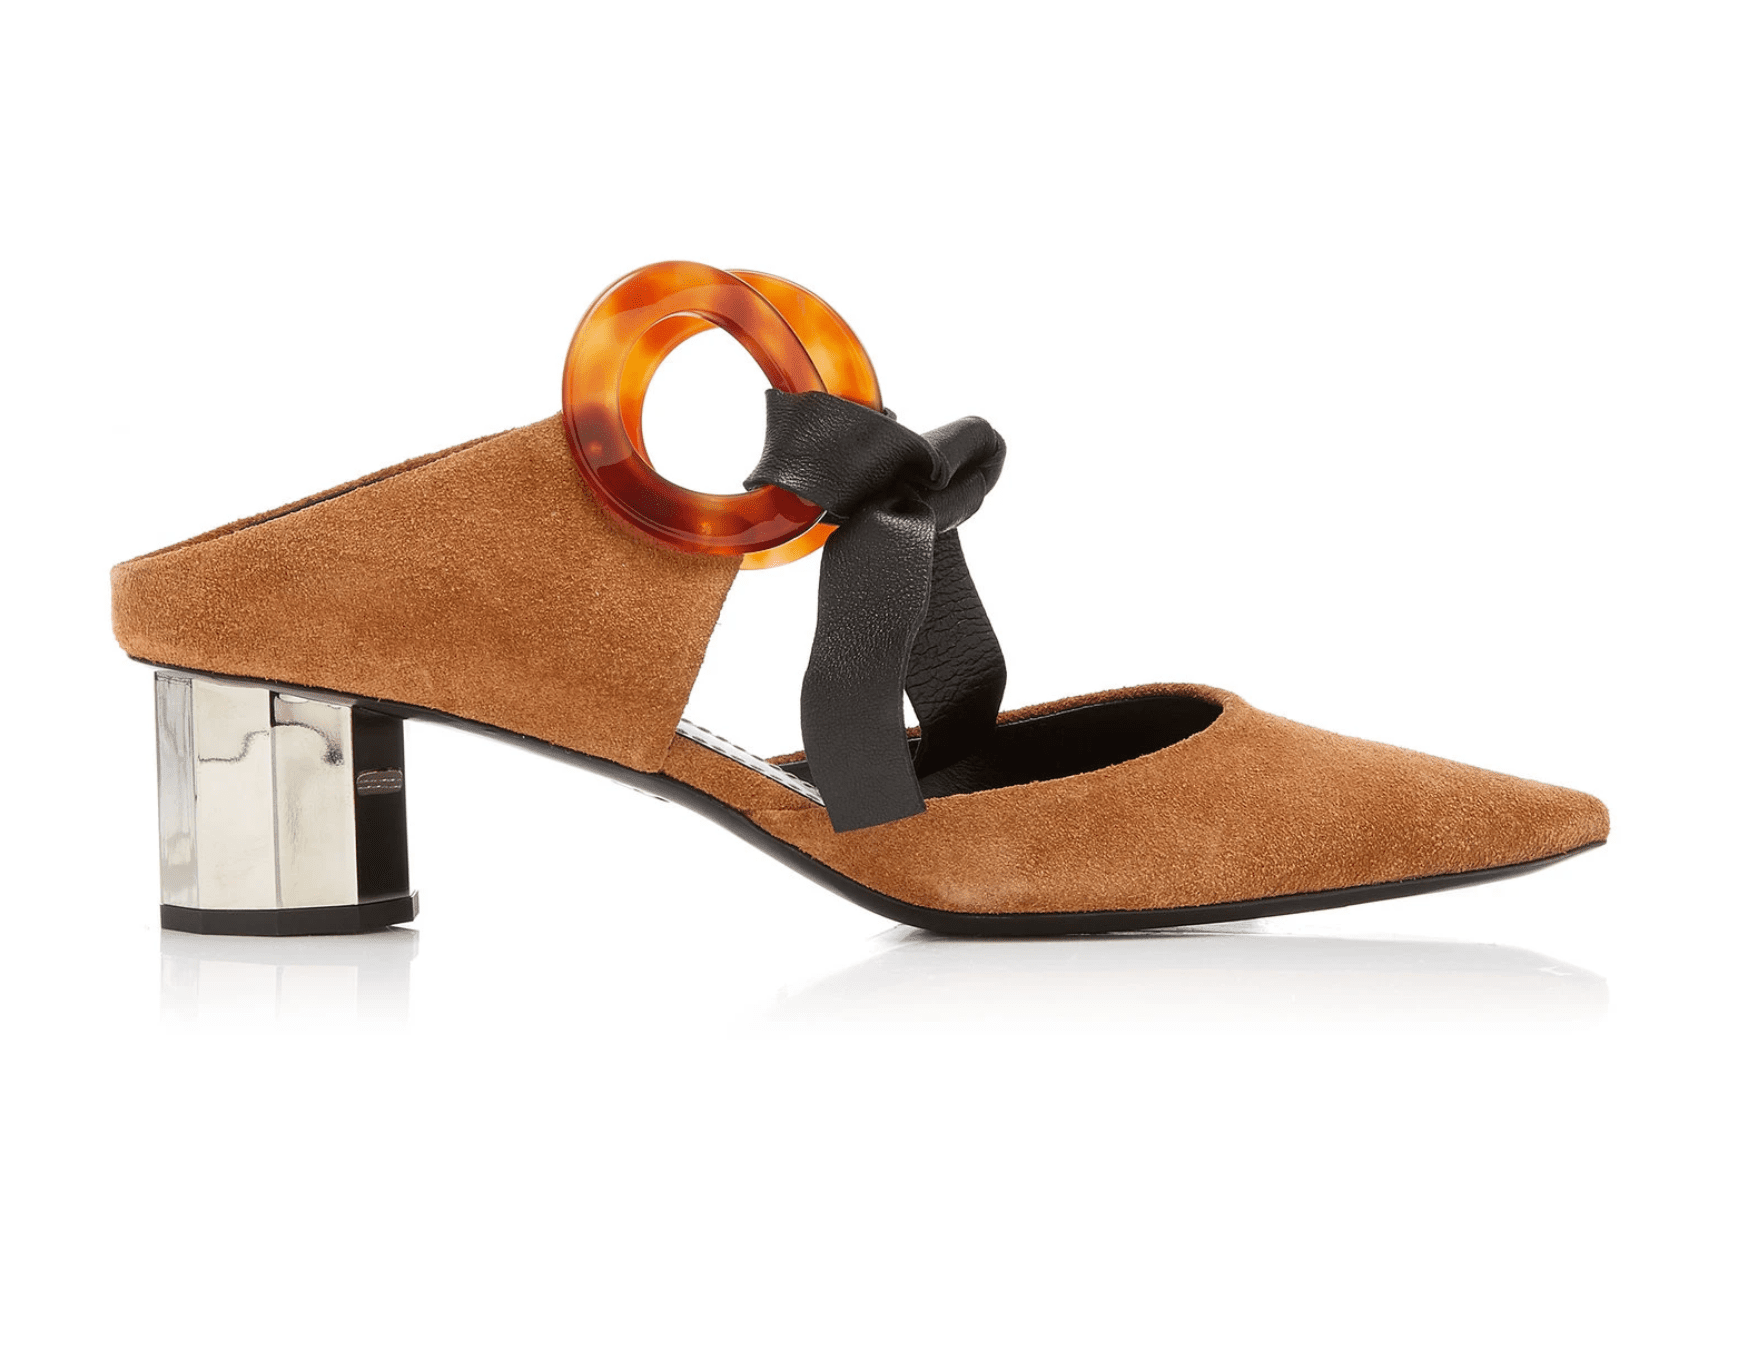 Proenza Schouler Leather-Trimmed Grommet-Embellished Suede Mules